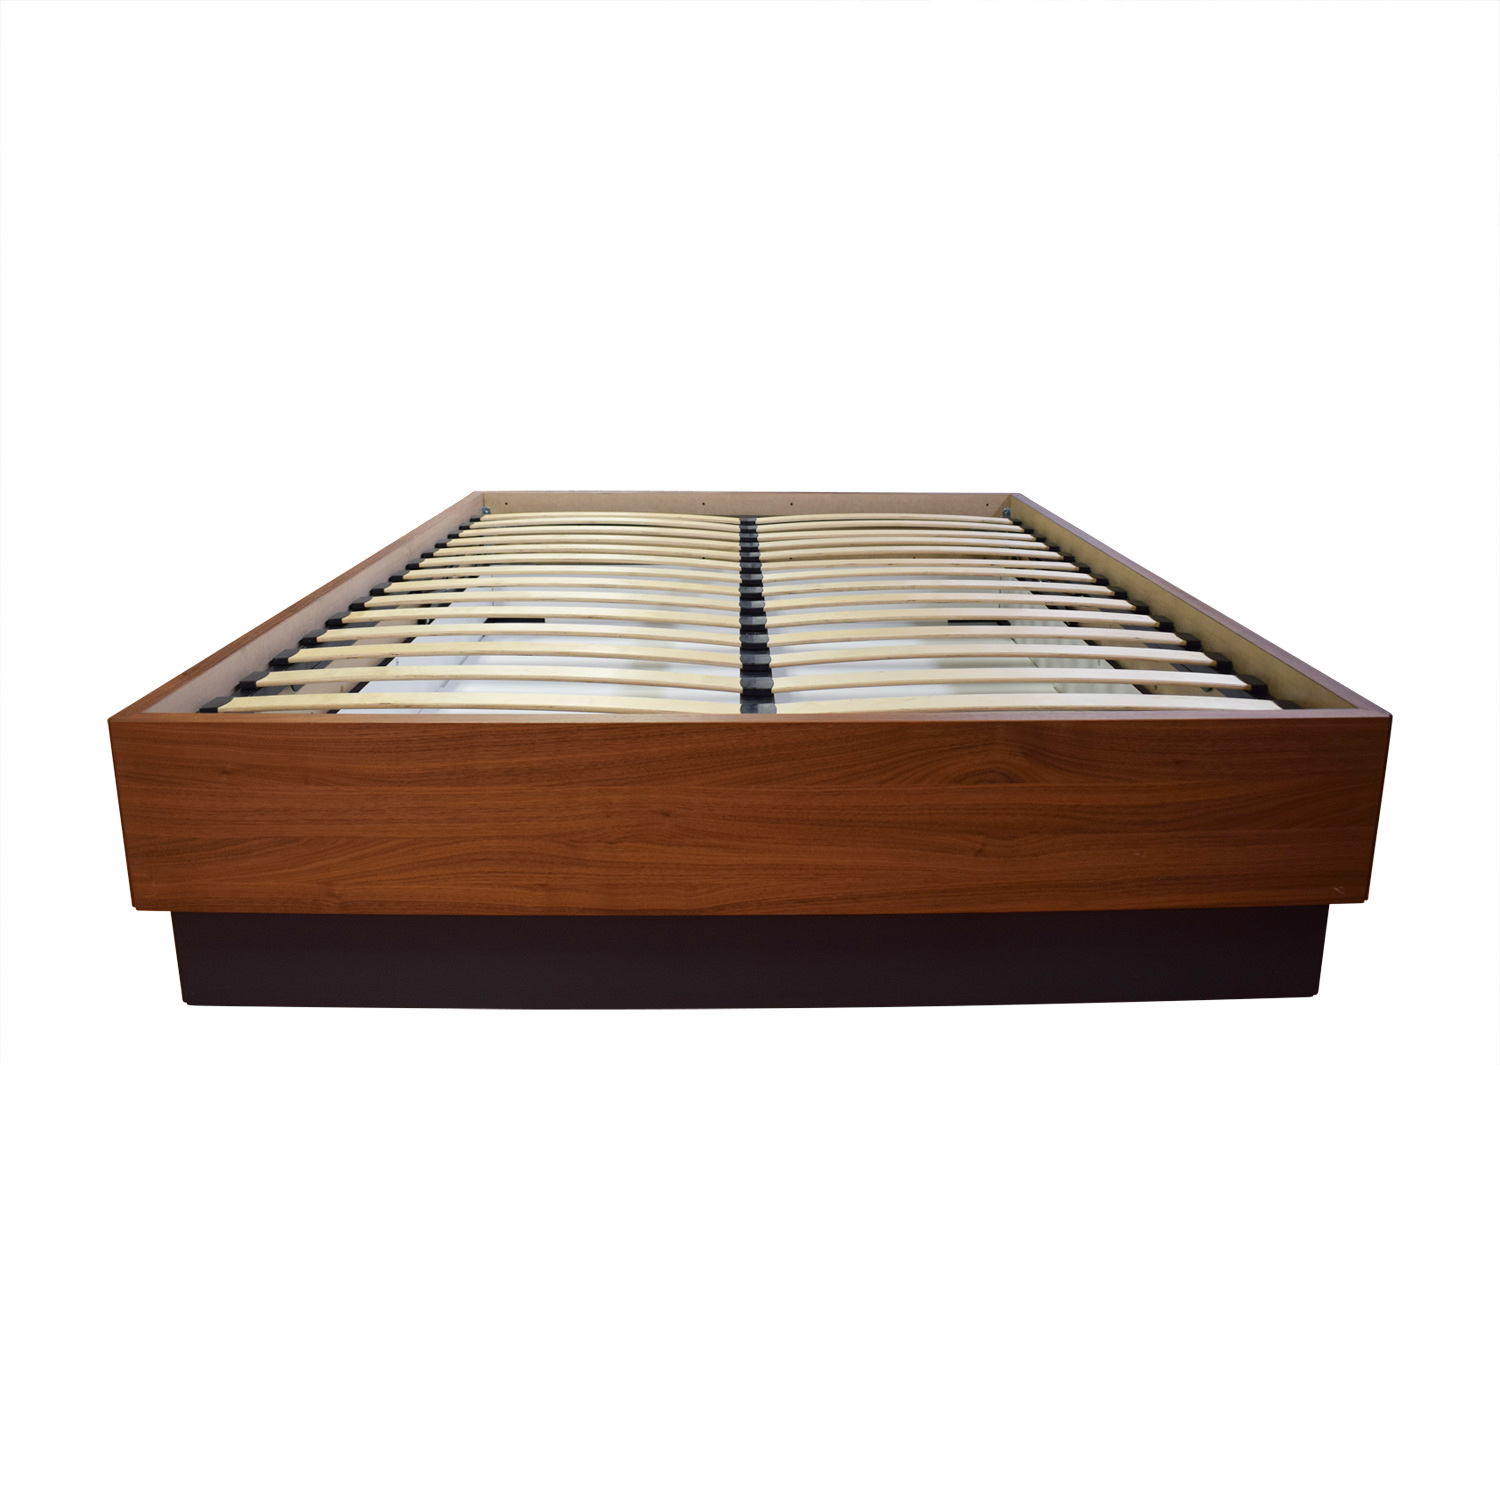 67 Off Boconcept Bo Concept Queen Platform Wood Bed